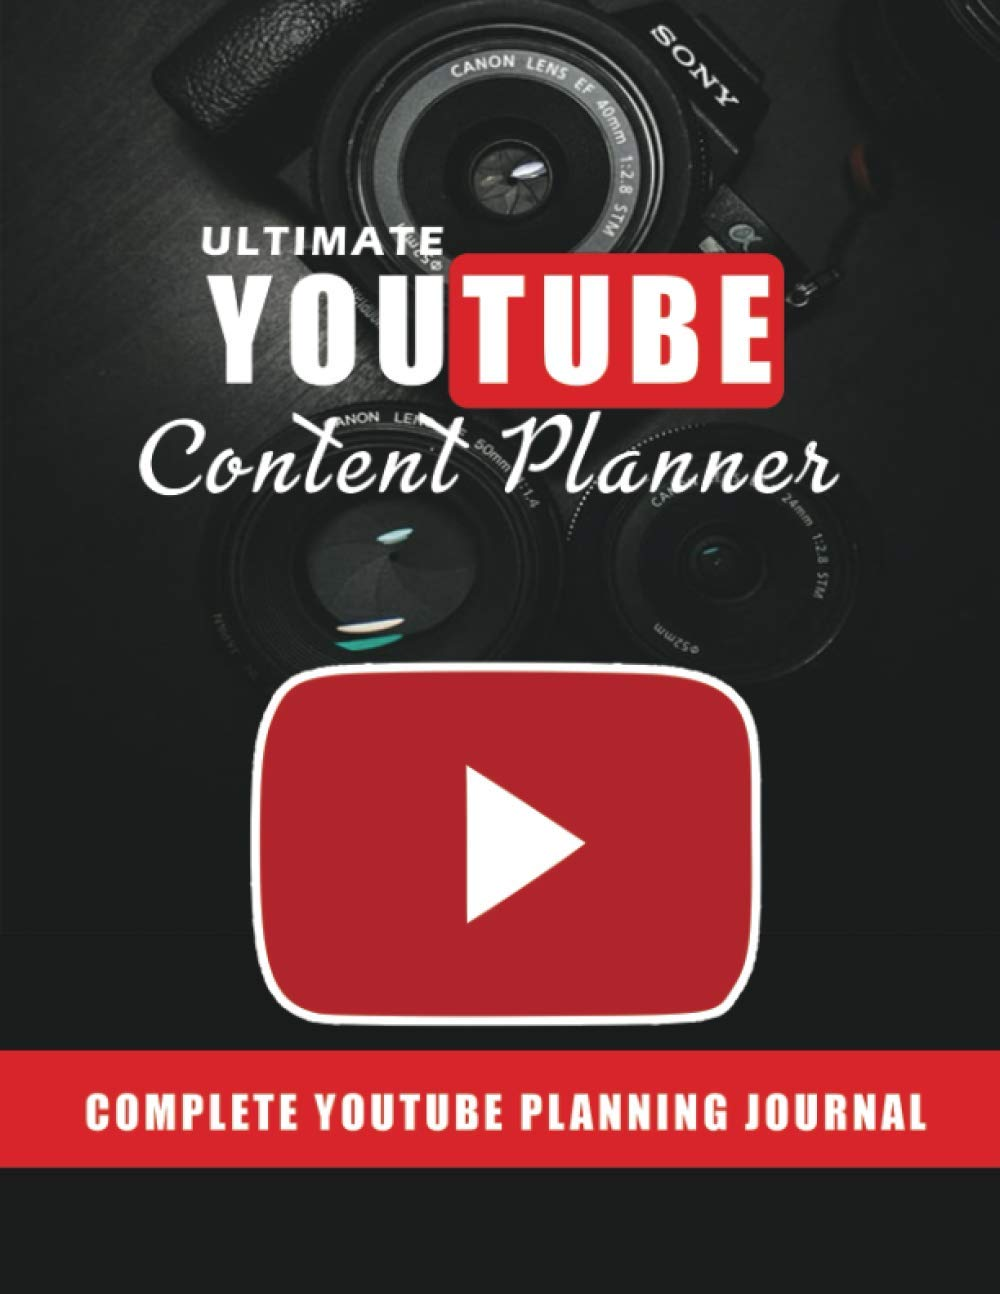 Ultimate YouTube Content Planner: Complete Vlogging Planner Journal to Build an Outstanding YouTube Channel. Video Planning Notebook for Professionals and Beginners